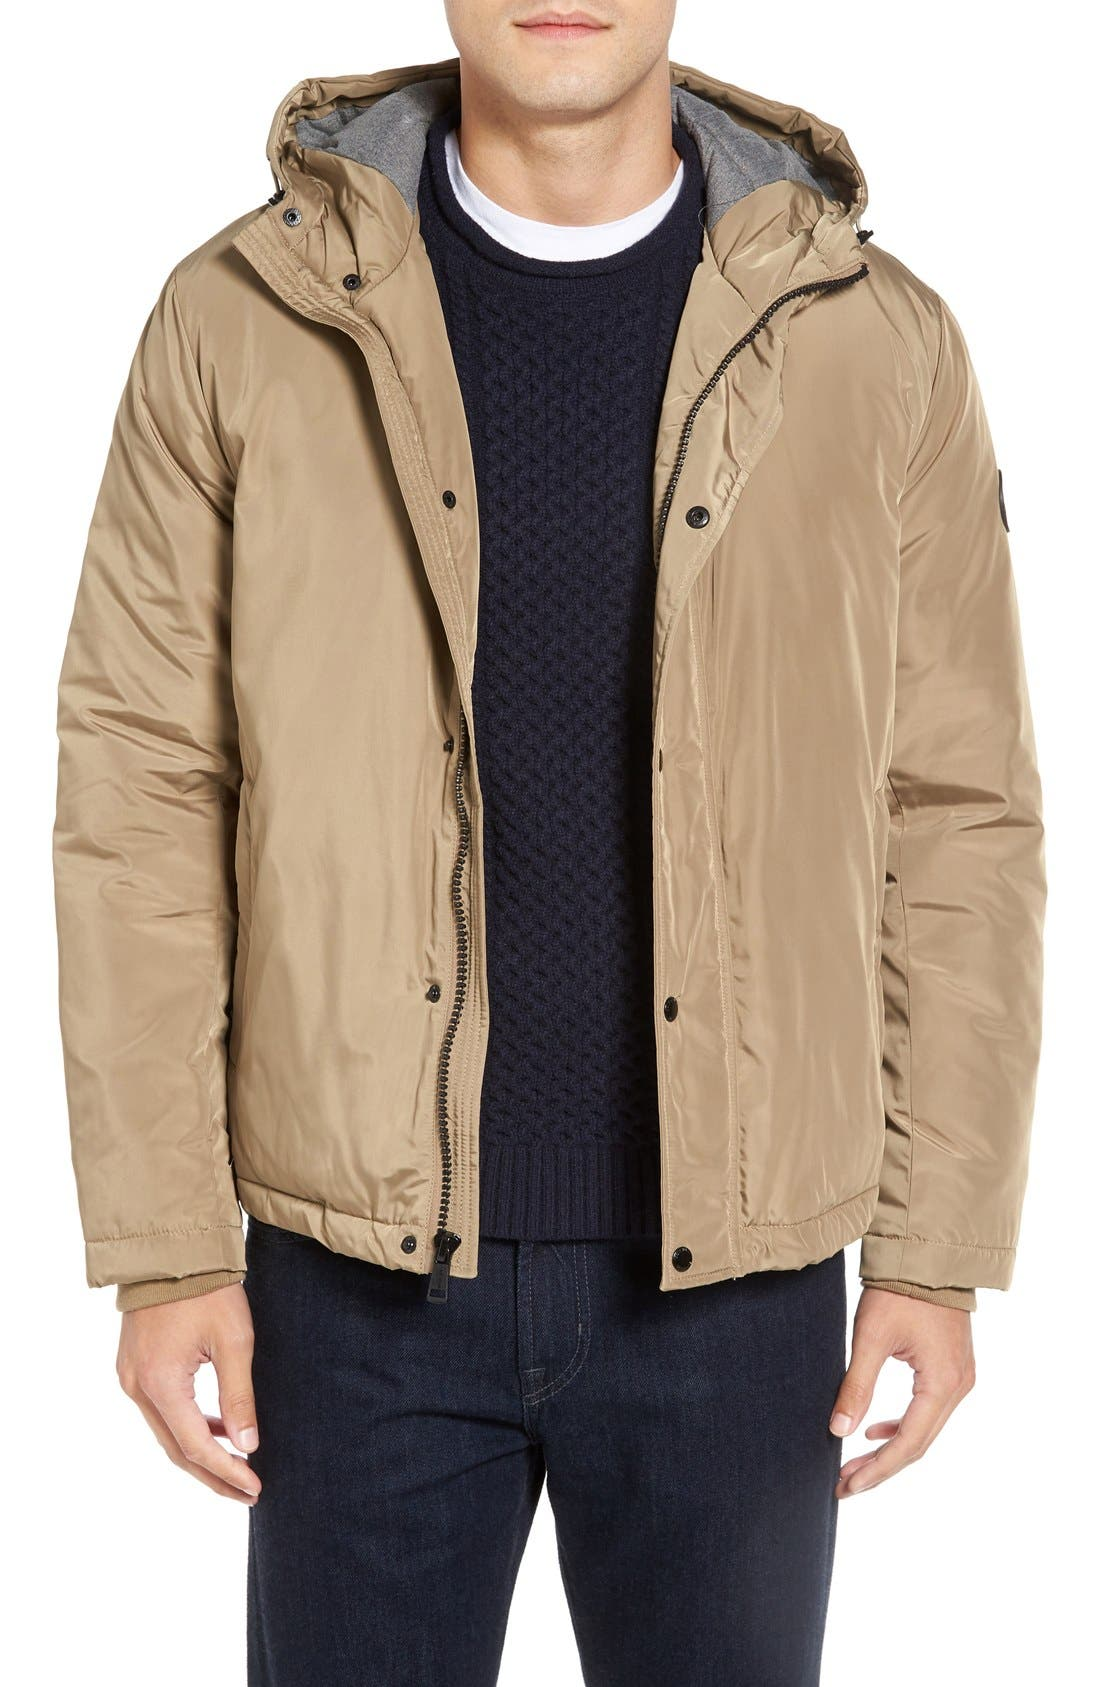 Cole Haan Water Resistant Insulated Jacket